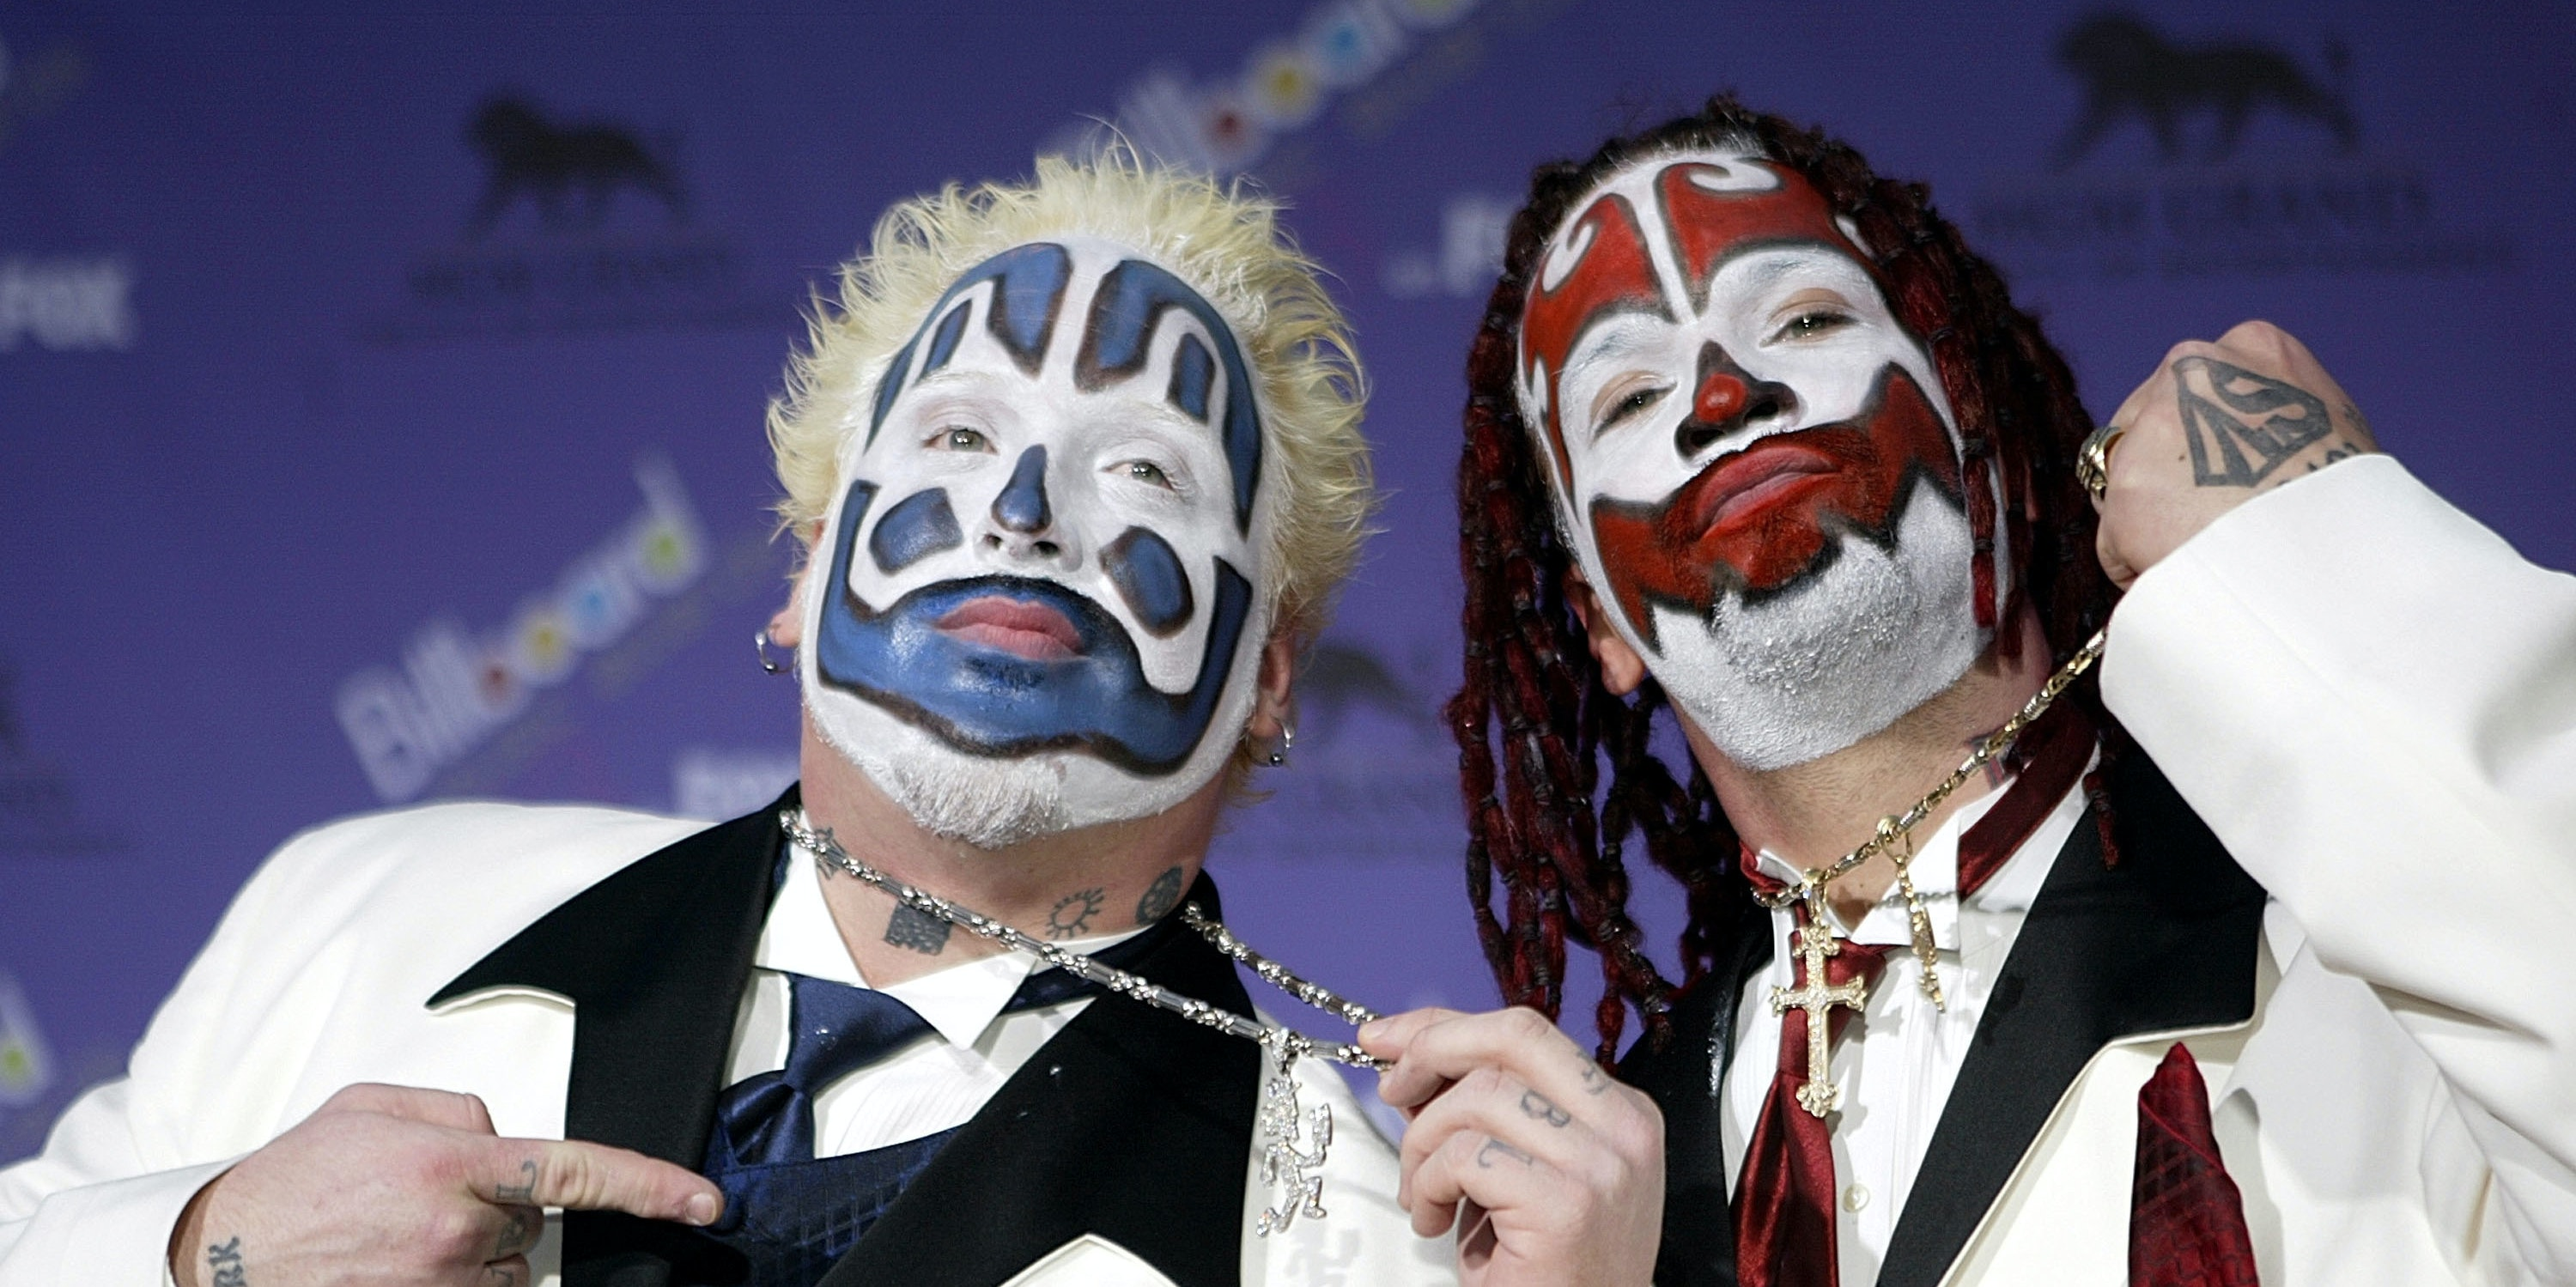 The Insane Clown Posse attends the 2003 Billboard Music Awards at the MGM Grand Garden Arena December 10, 2003 in Las Vegas, Nevada.  The 14th annual ceremony airs live tonight on FOX 8:00-10:00 PM ET Live/PT.